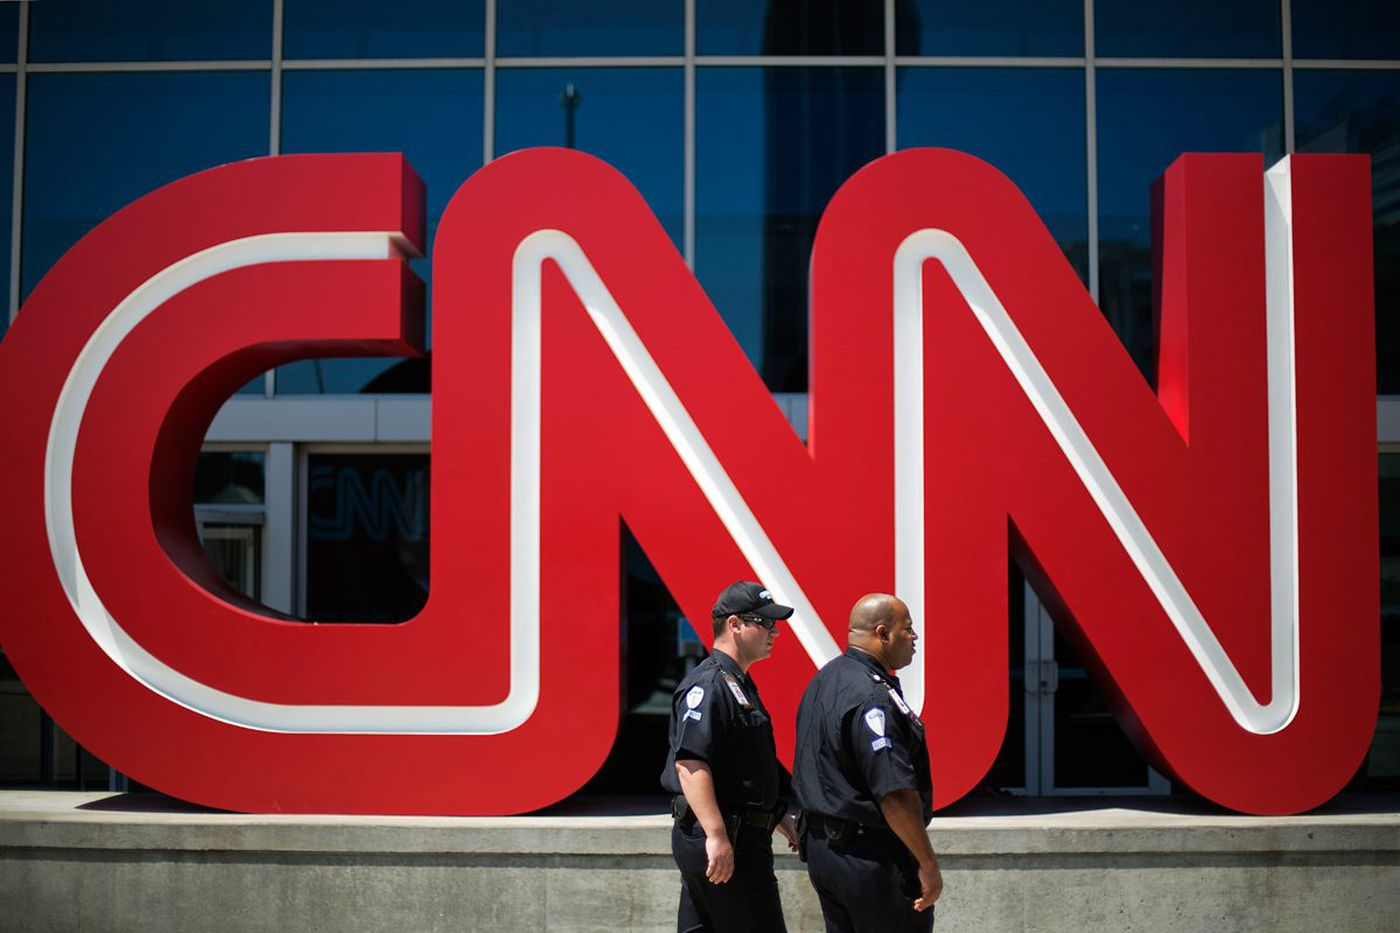 CNN deletes, retracts story linking Trump and Russia